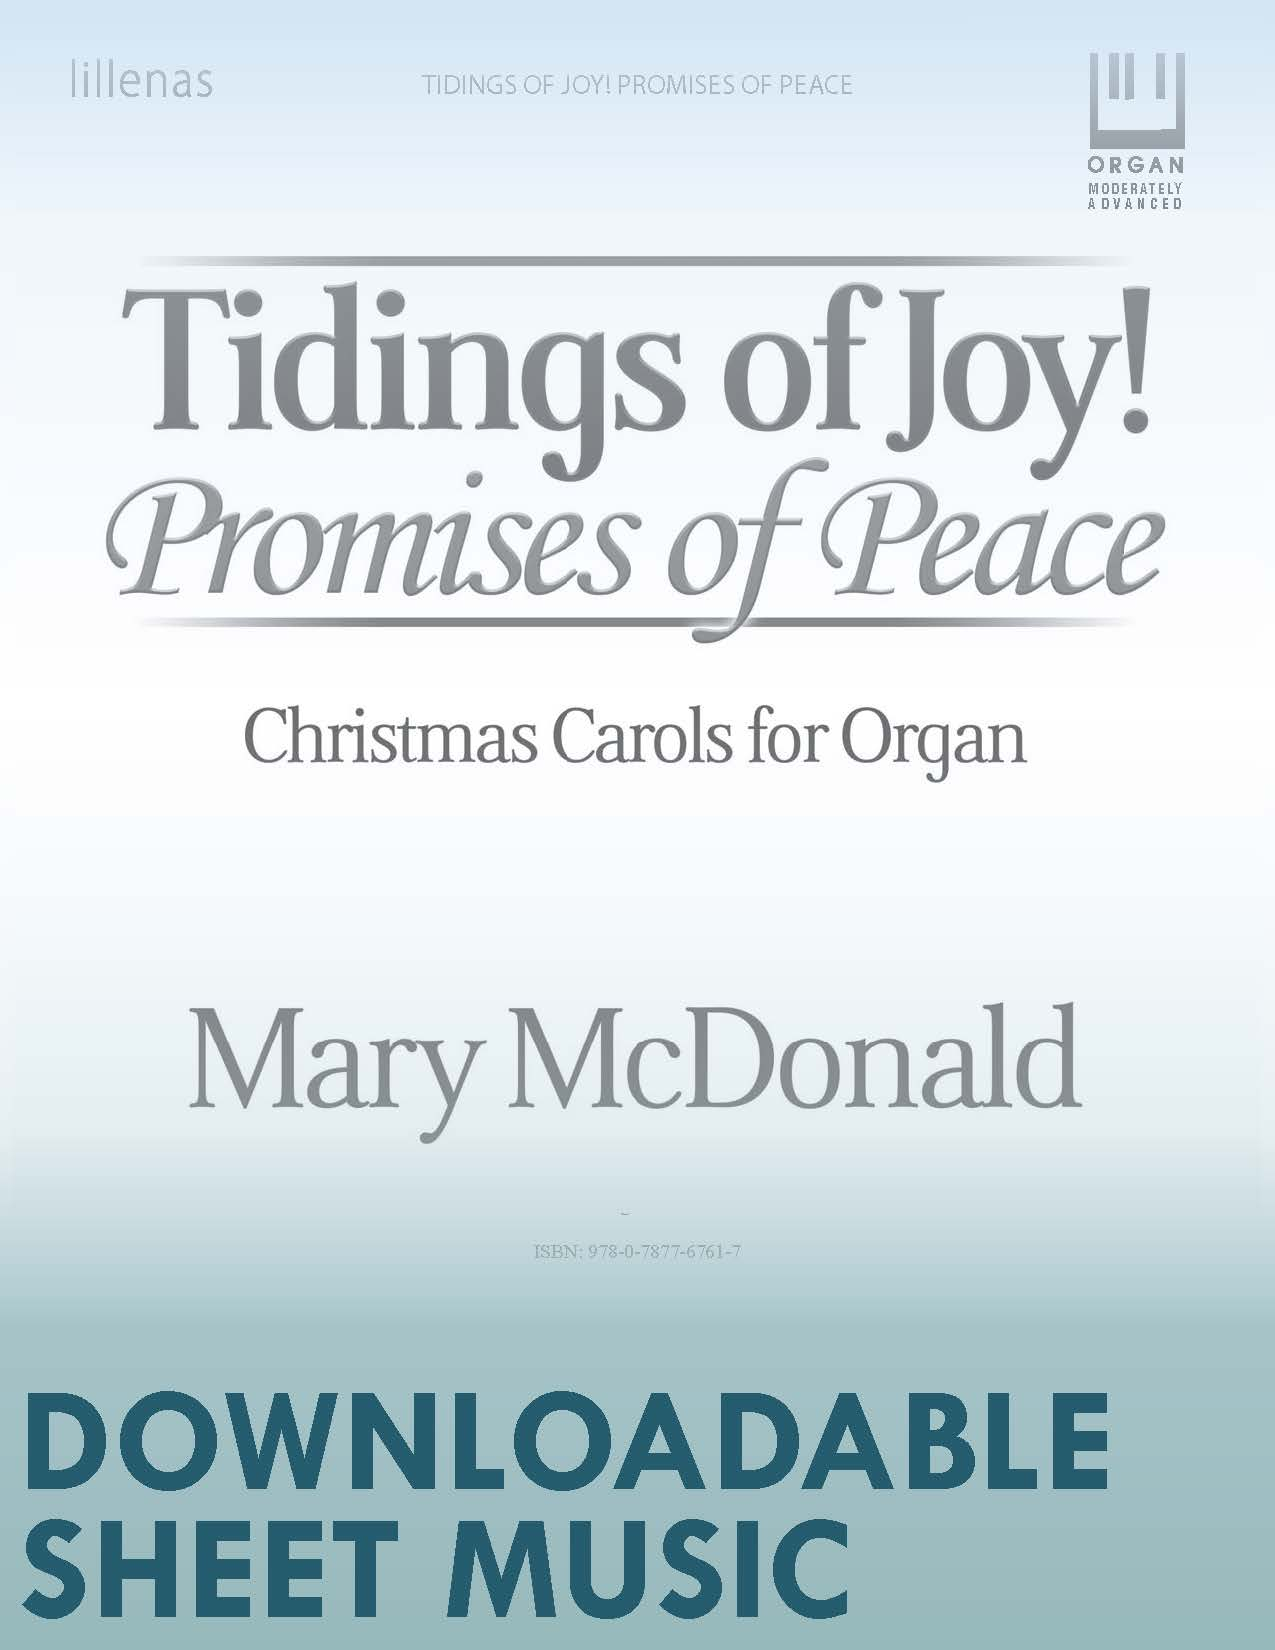 Tidings of Joy! Promises of Peace - Digital Download